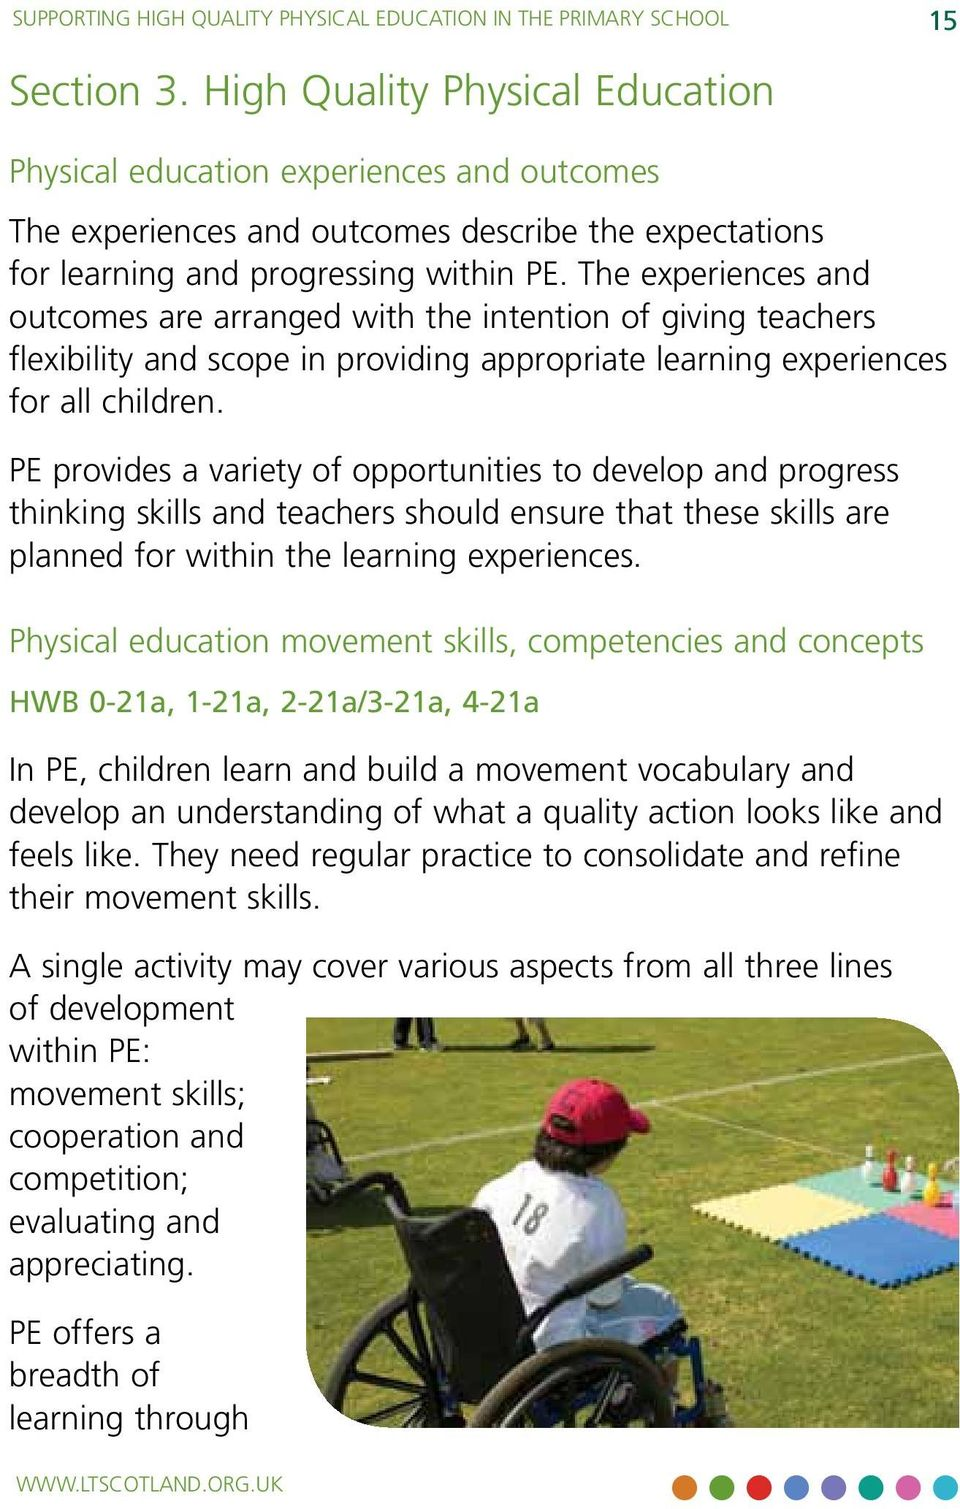 The experiences and outcomes are arranged with the intention of giving teachers flexibility and scope in providing appropriate learning experiences for all children.